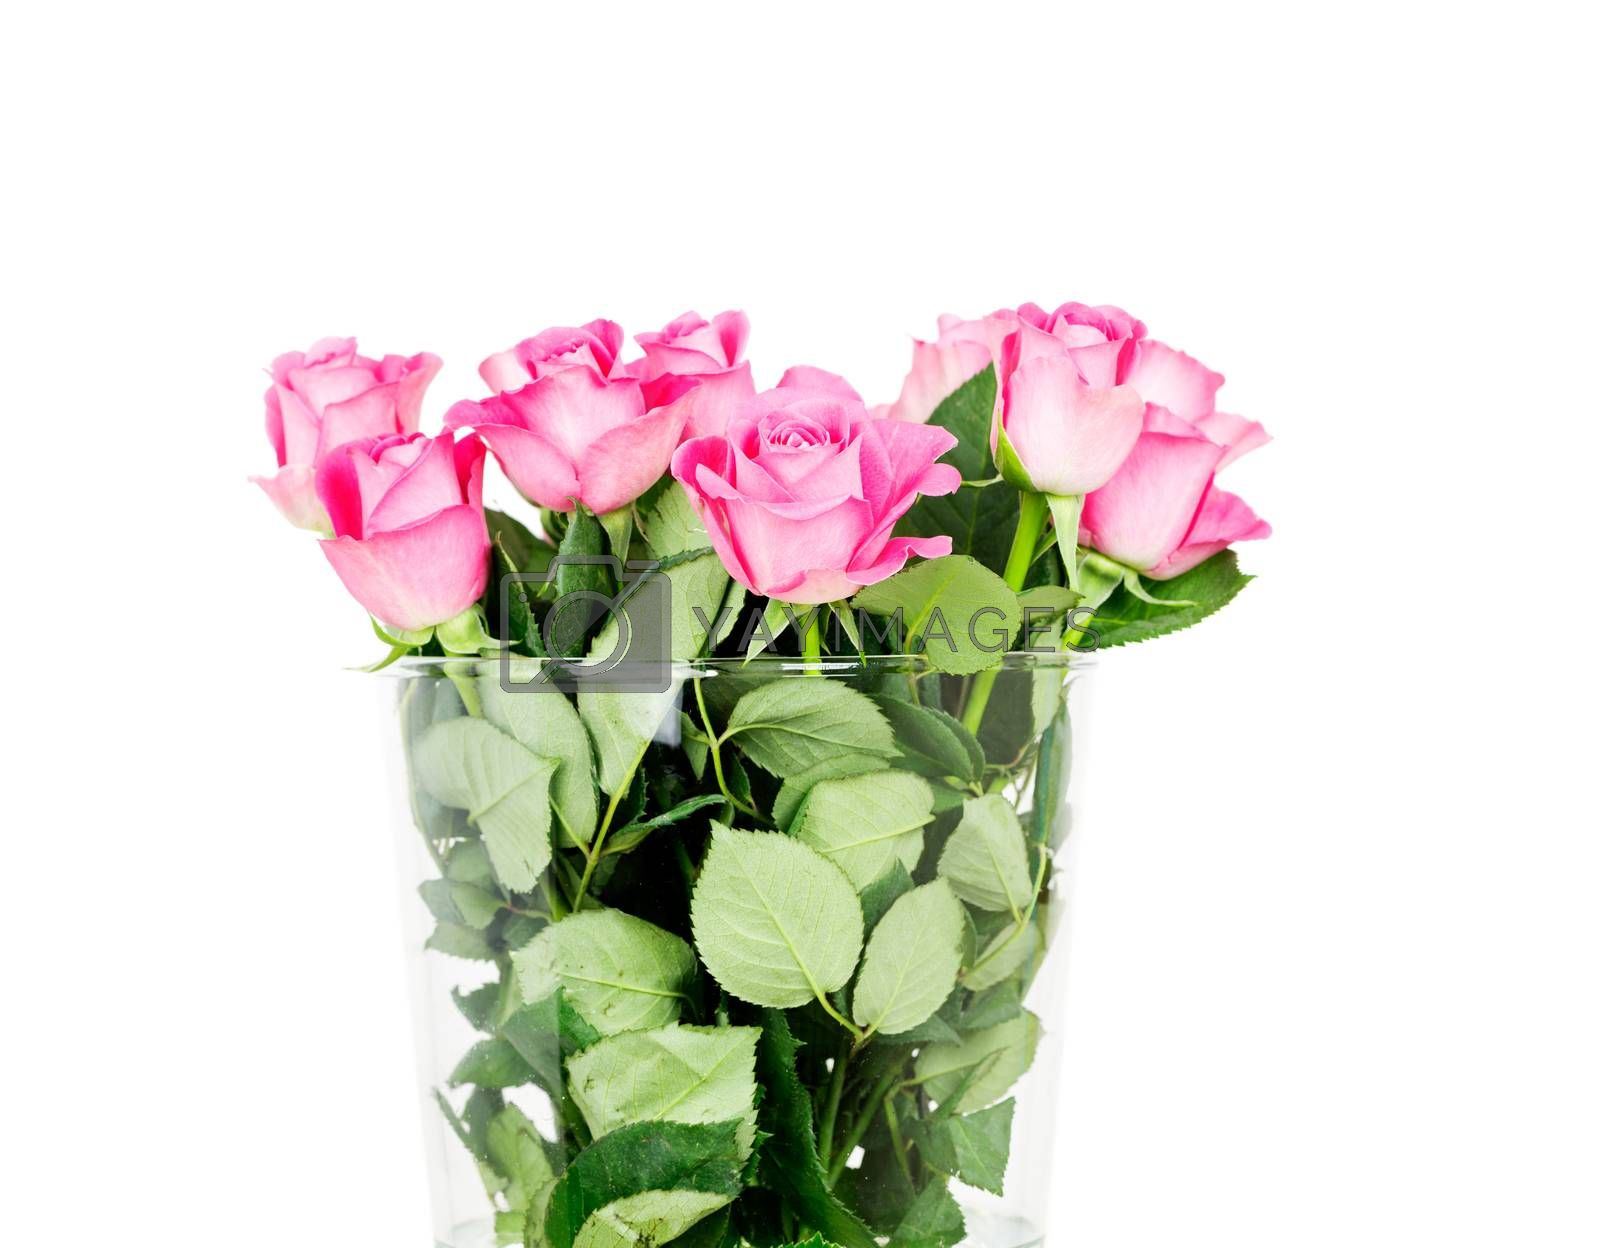 pink roses in vase isolated on white background by Nanisimova